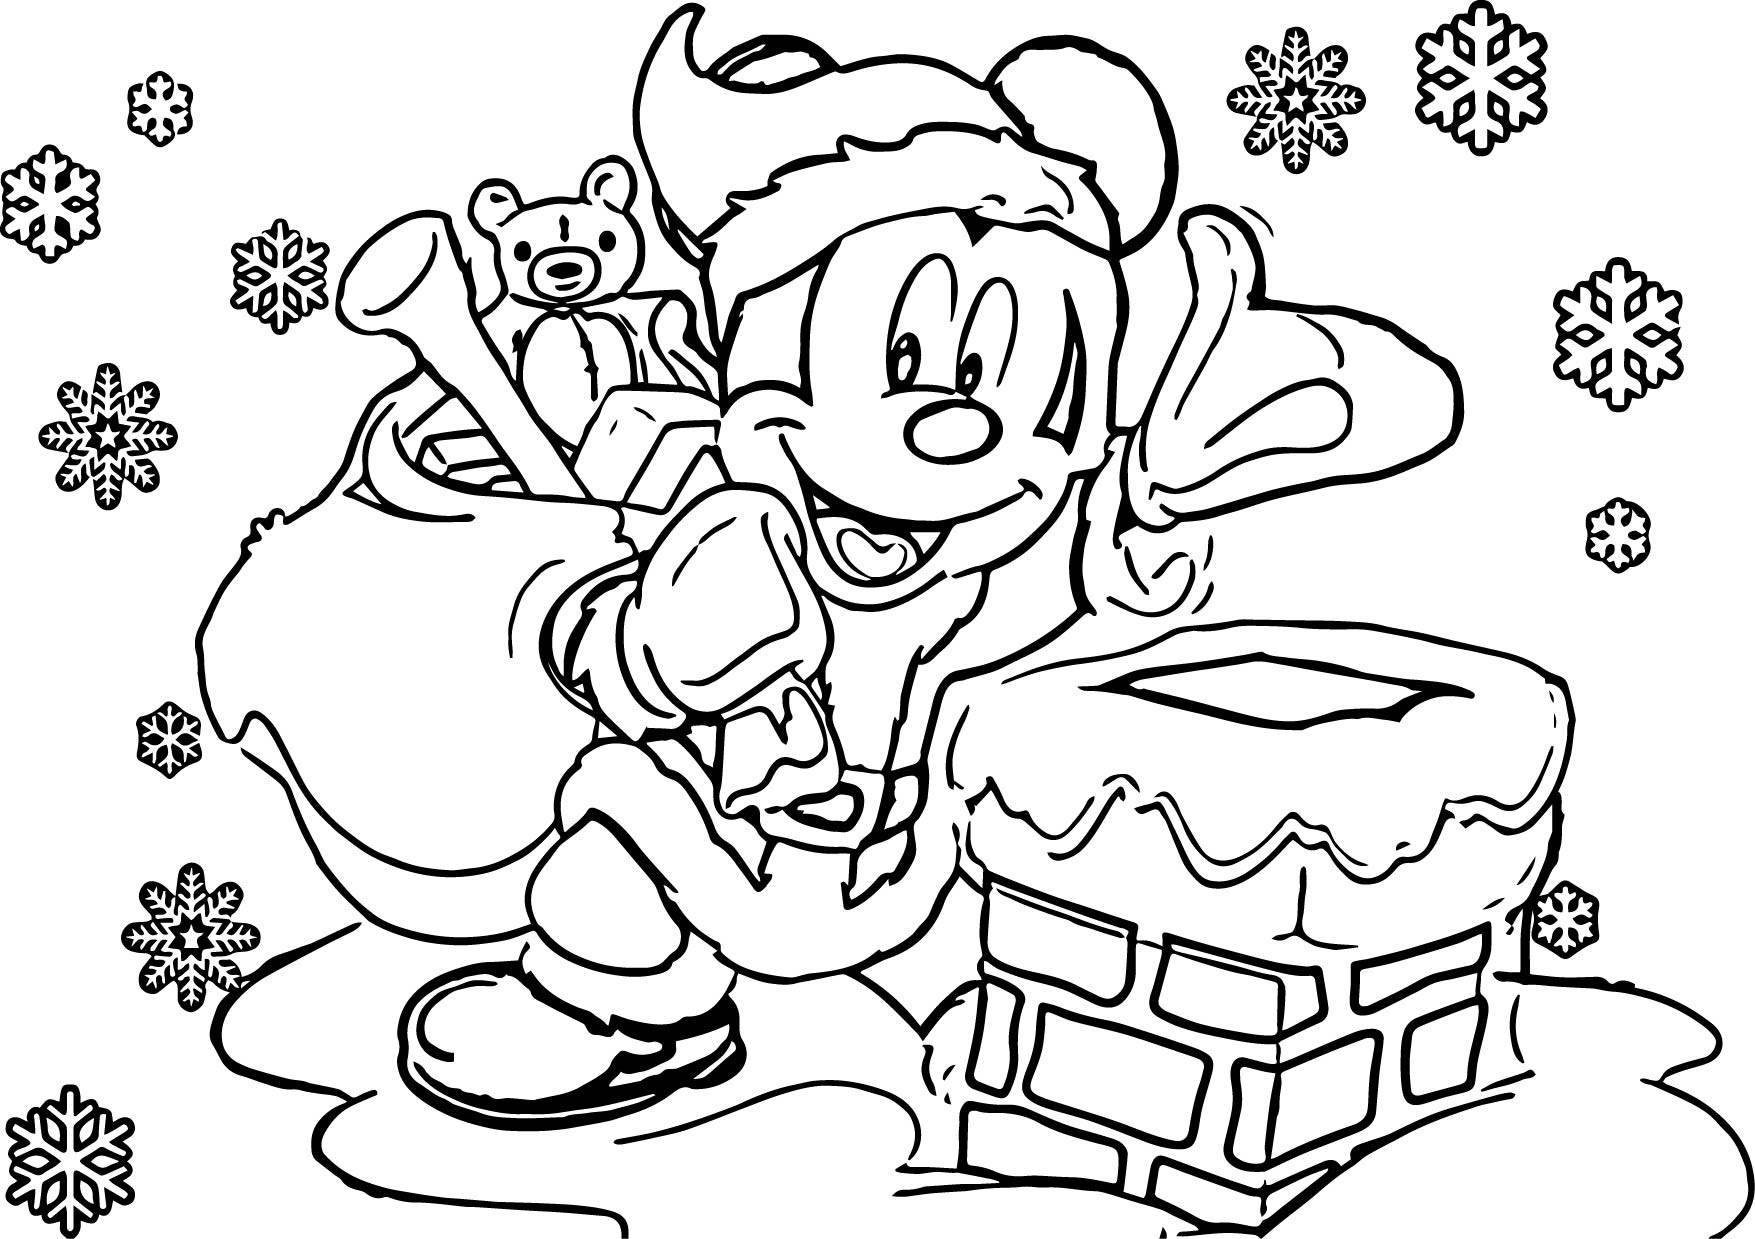 Disney Christmas Coloring Pages | Wecoloringpage.com